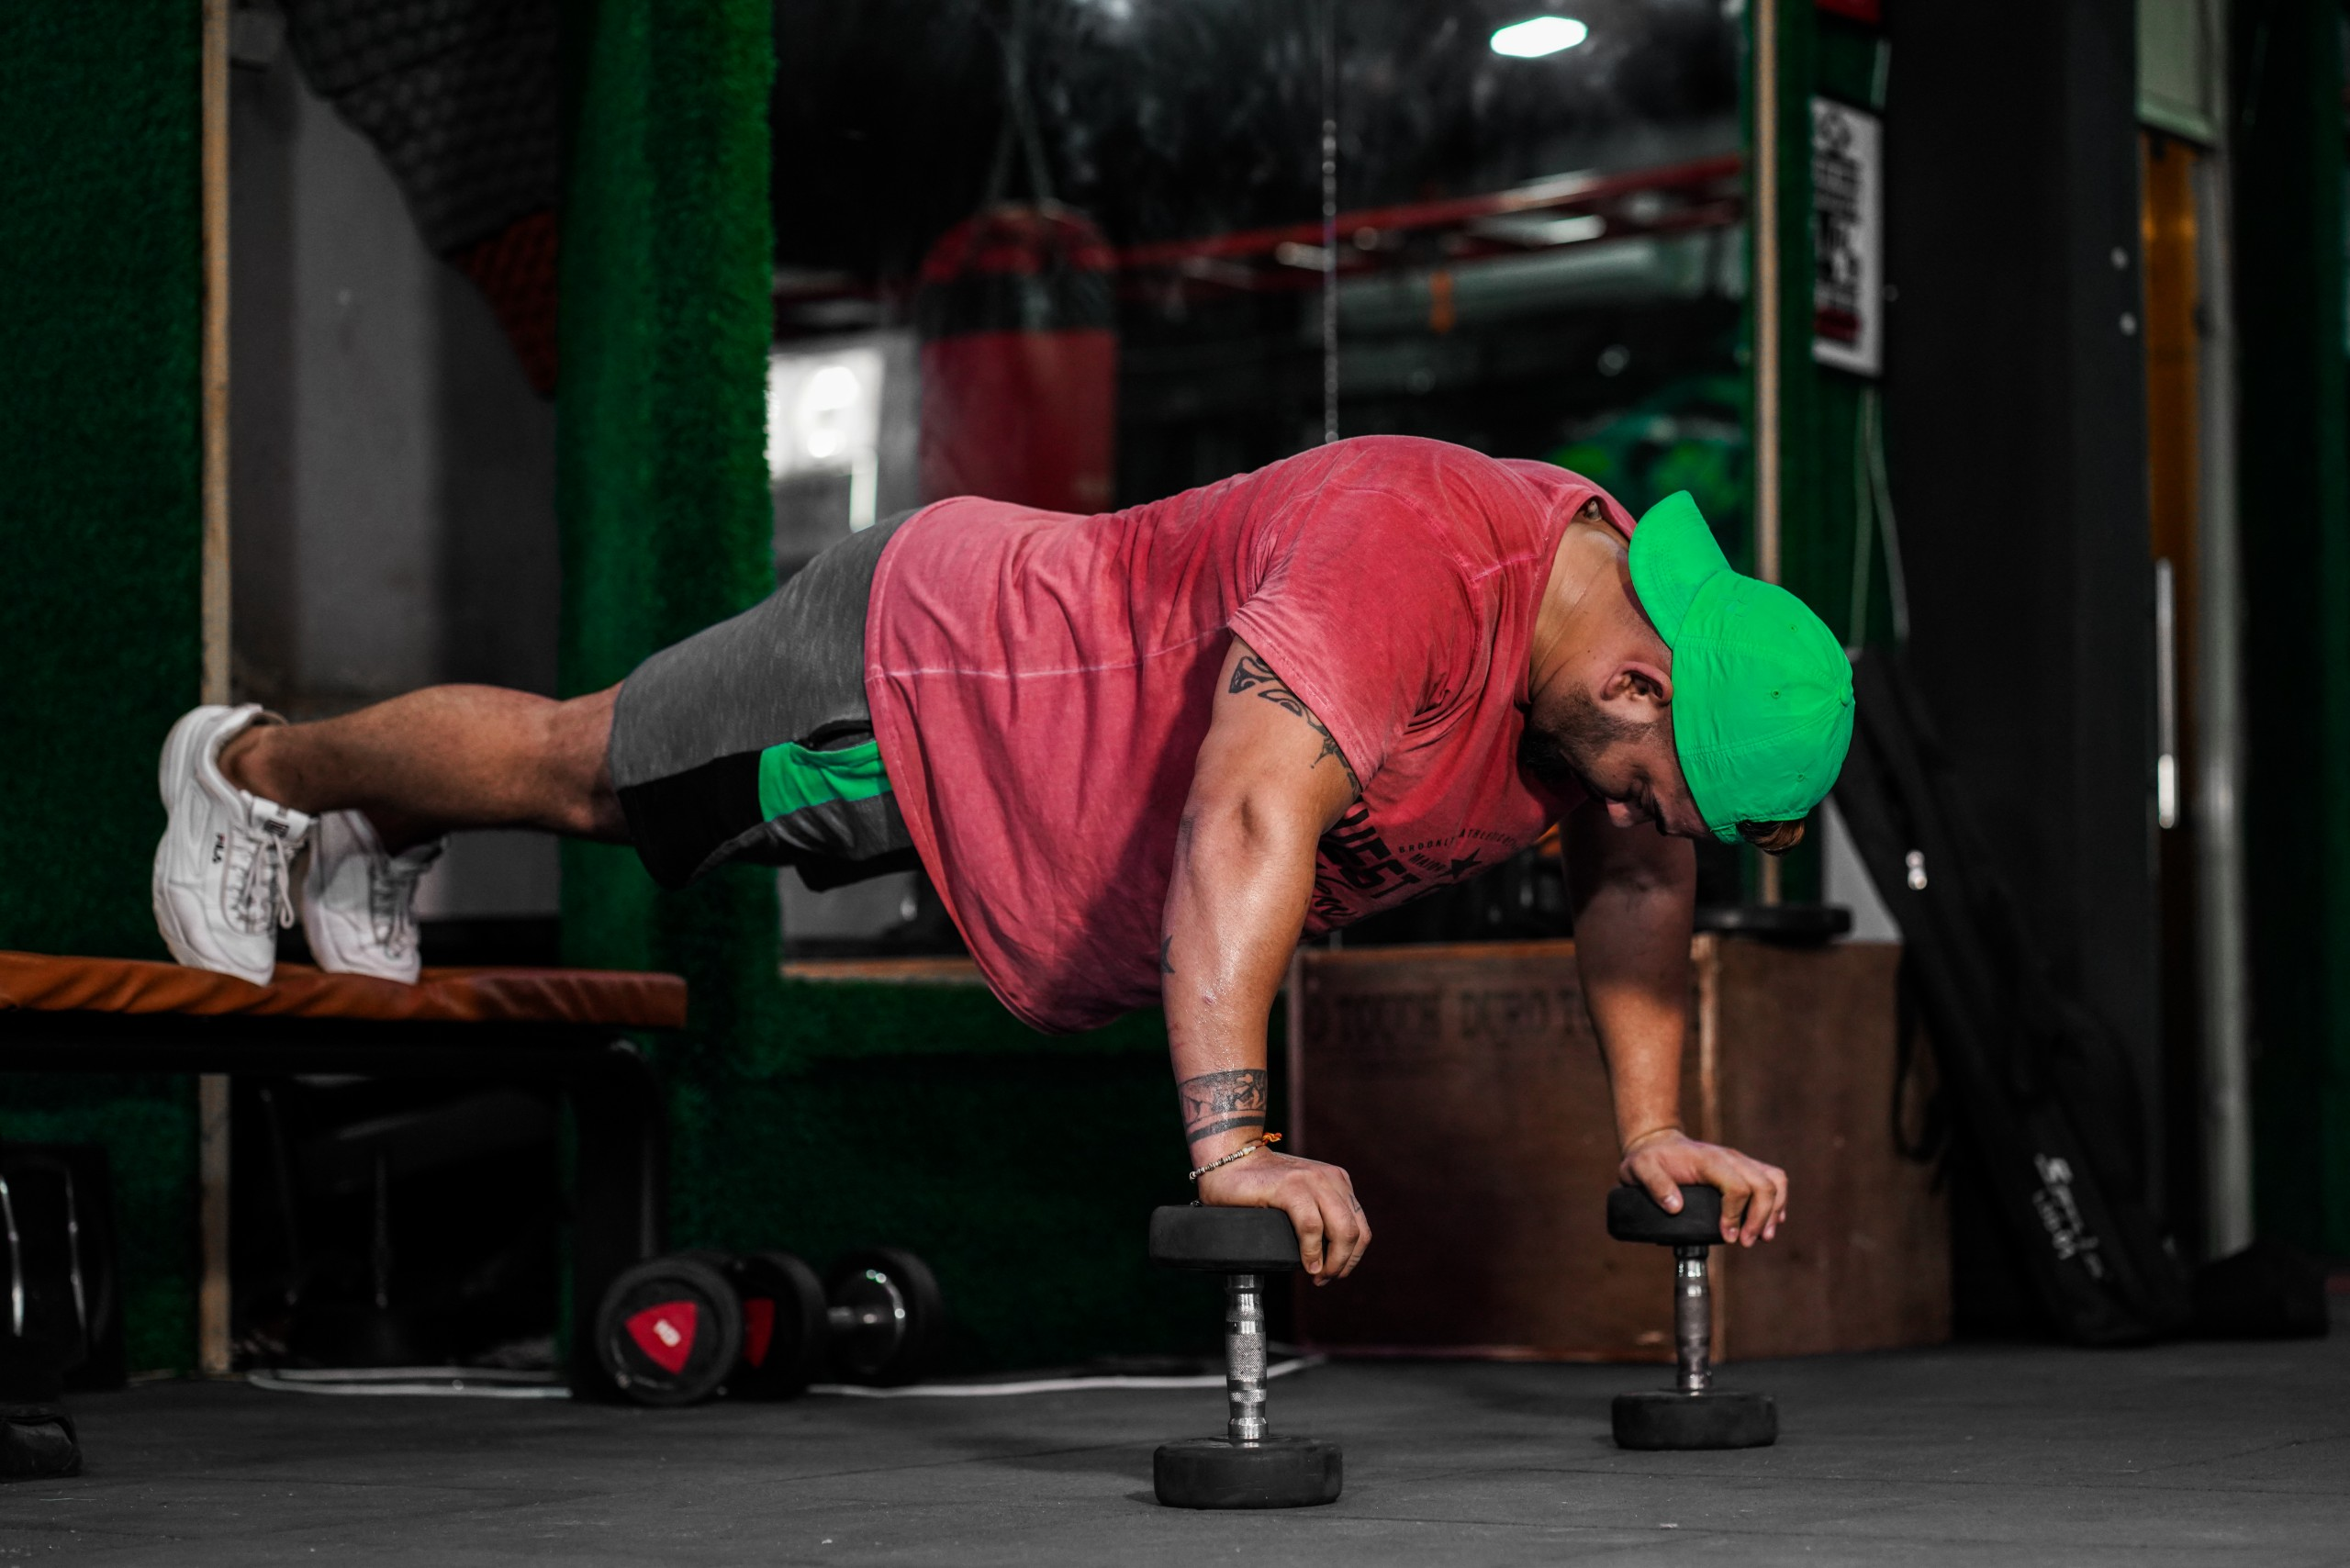 Gym man doing push-up exercise with dumbbell